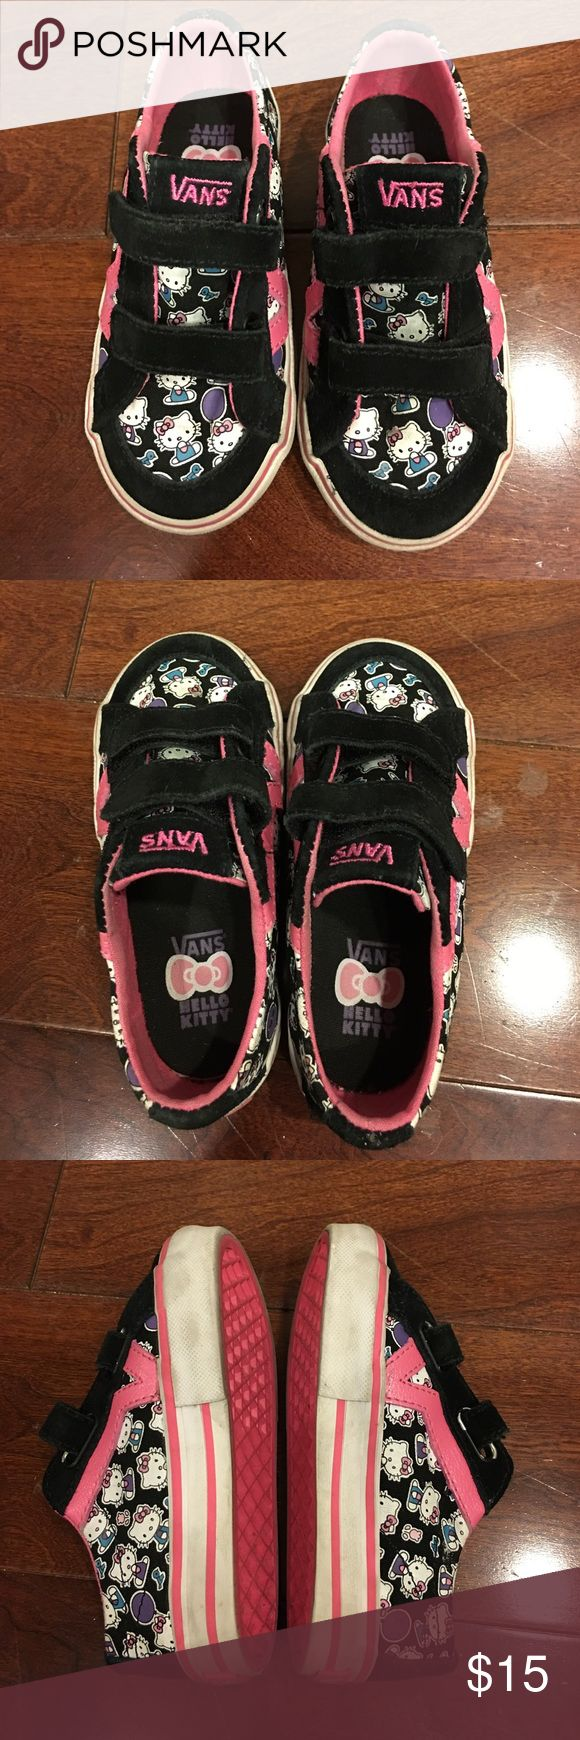 Kids Hello Kitty Vans shoes Kid's Hello Kitty Vans shoes, worn only a few times, good condition Vans Shoes